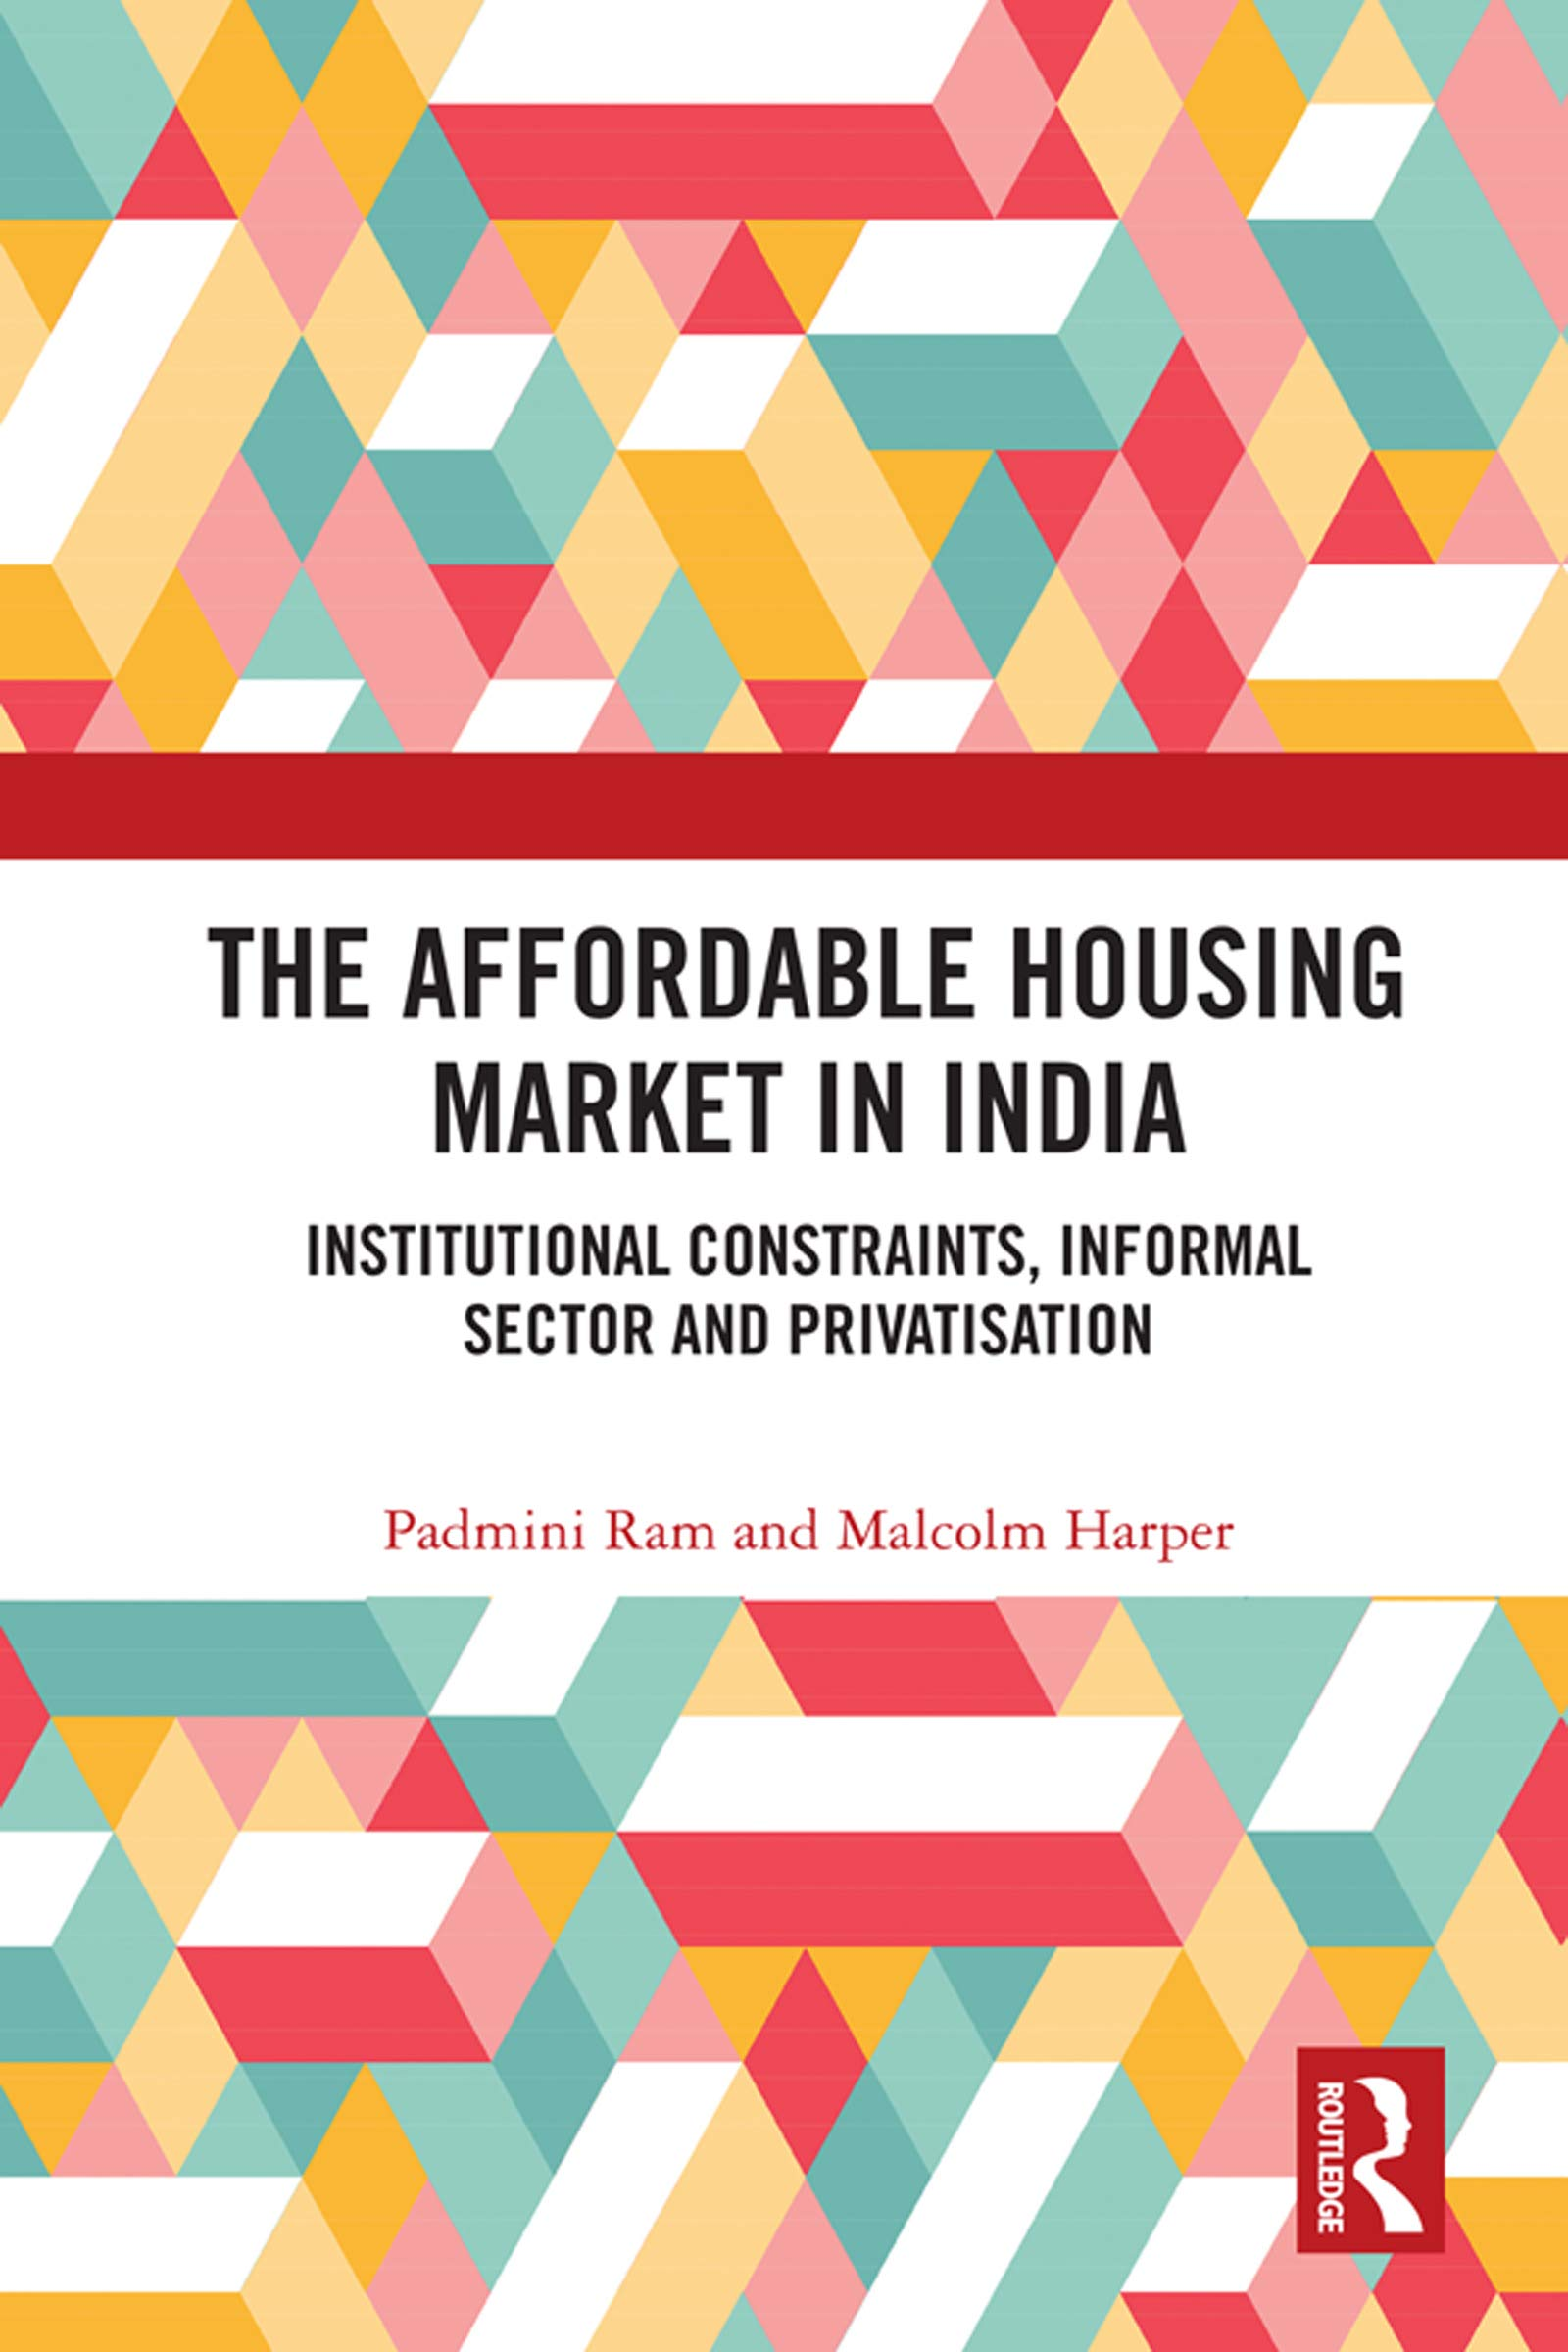 The Affordable Housing Market in India: Institutional Constraints, Informal Sector and Privatisation